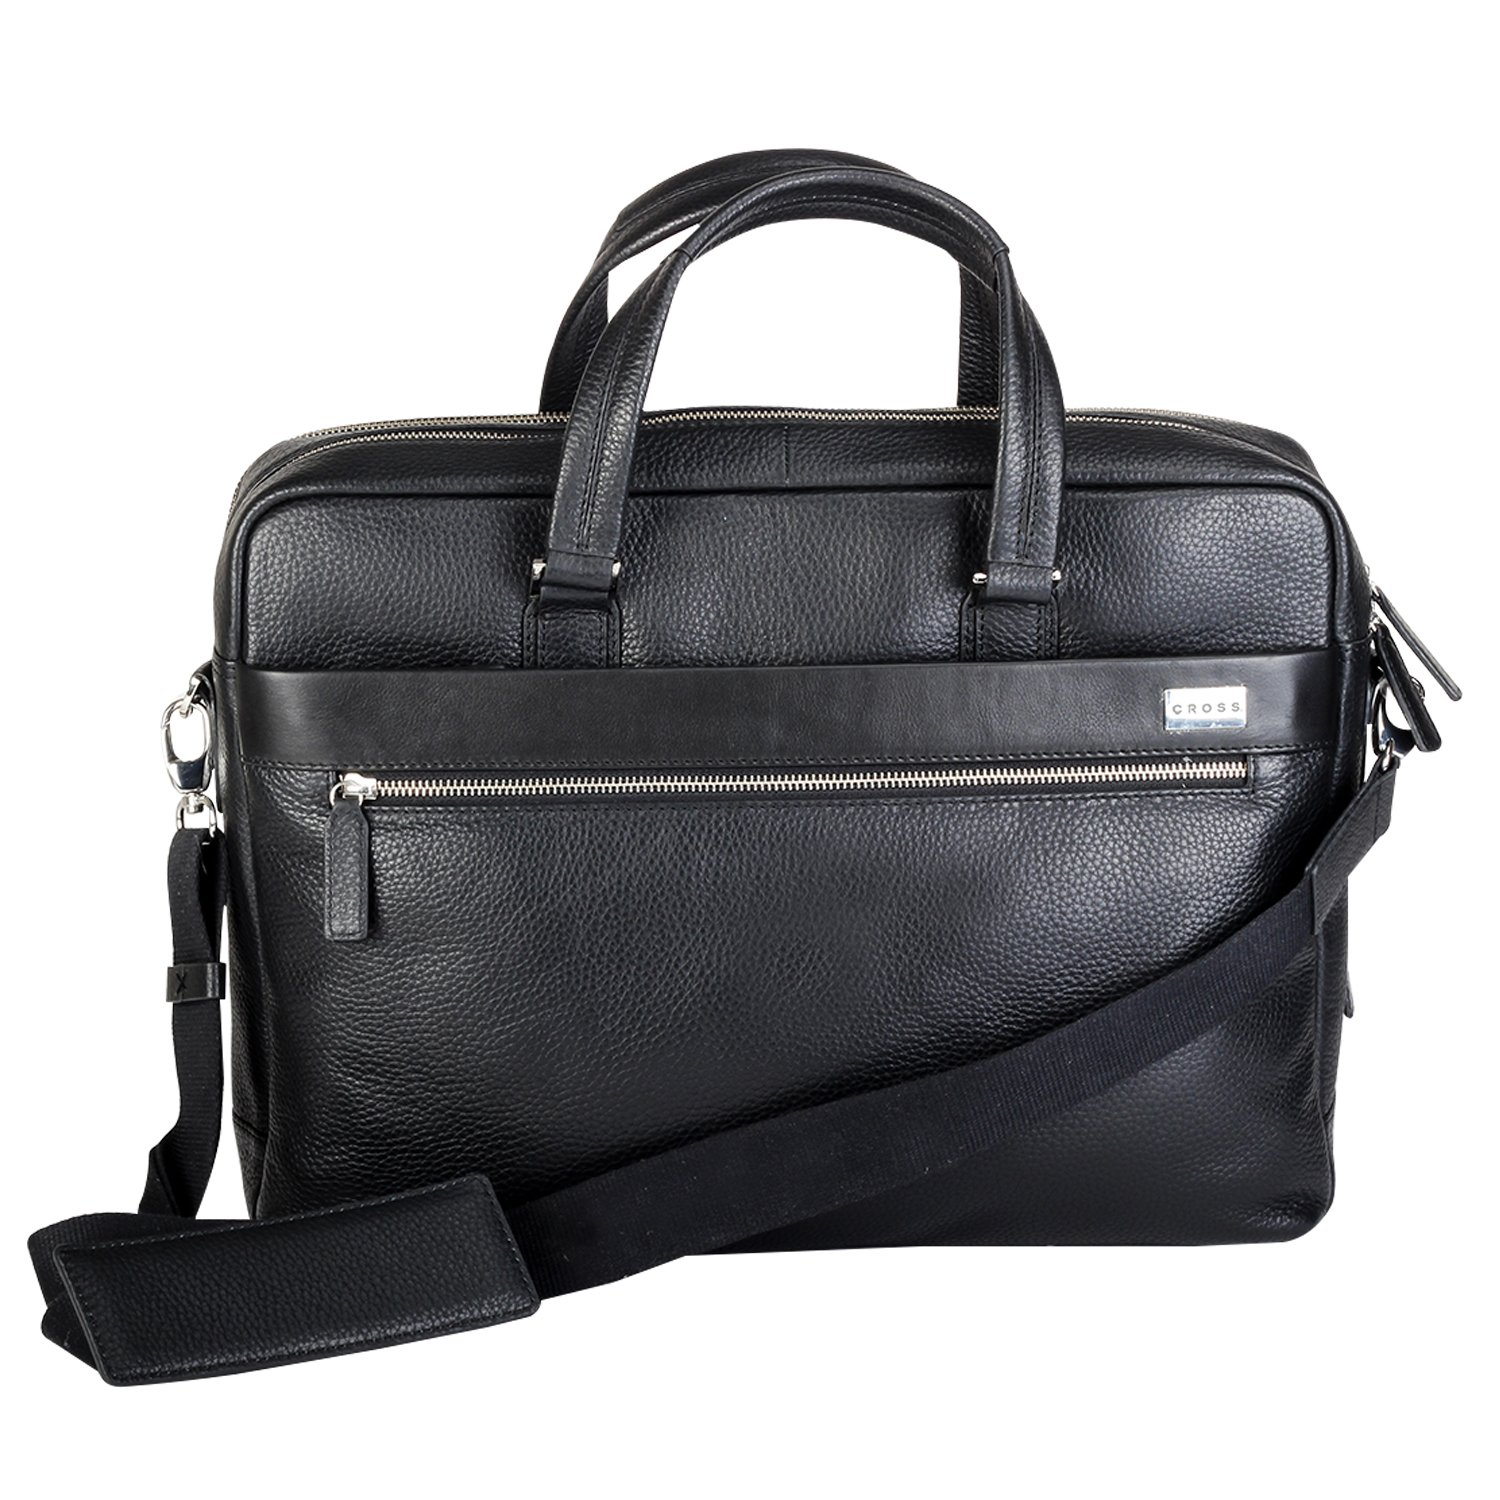 CROSS Men's Genuine Leather Weekender / Office / Laptop / Business Bag -15.6 inches Laptop Compartment (Black)